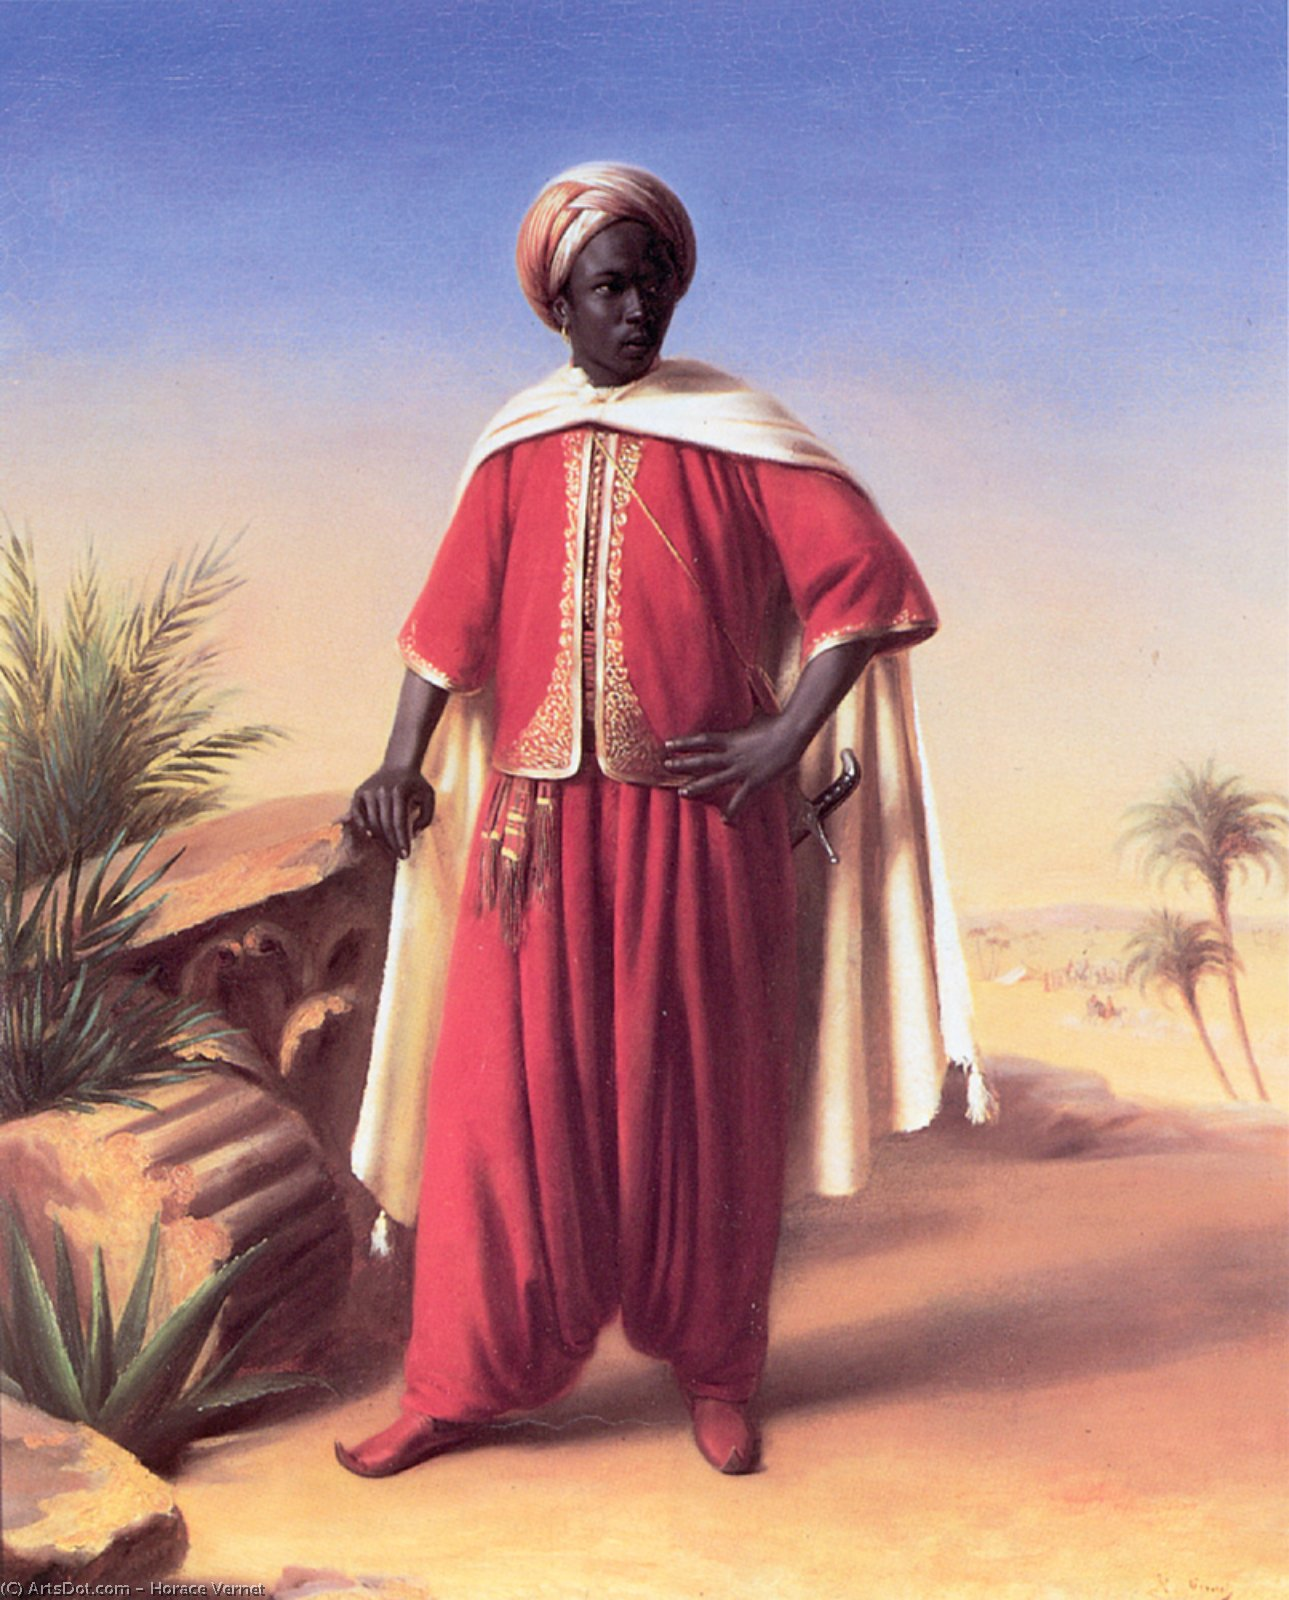 Wikioo.org - The Encyclopedia of Fine Arts - Painting, Artwork by Emile Jean Horace Vernet - H Portrait of an Arab